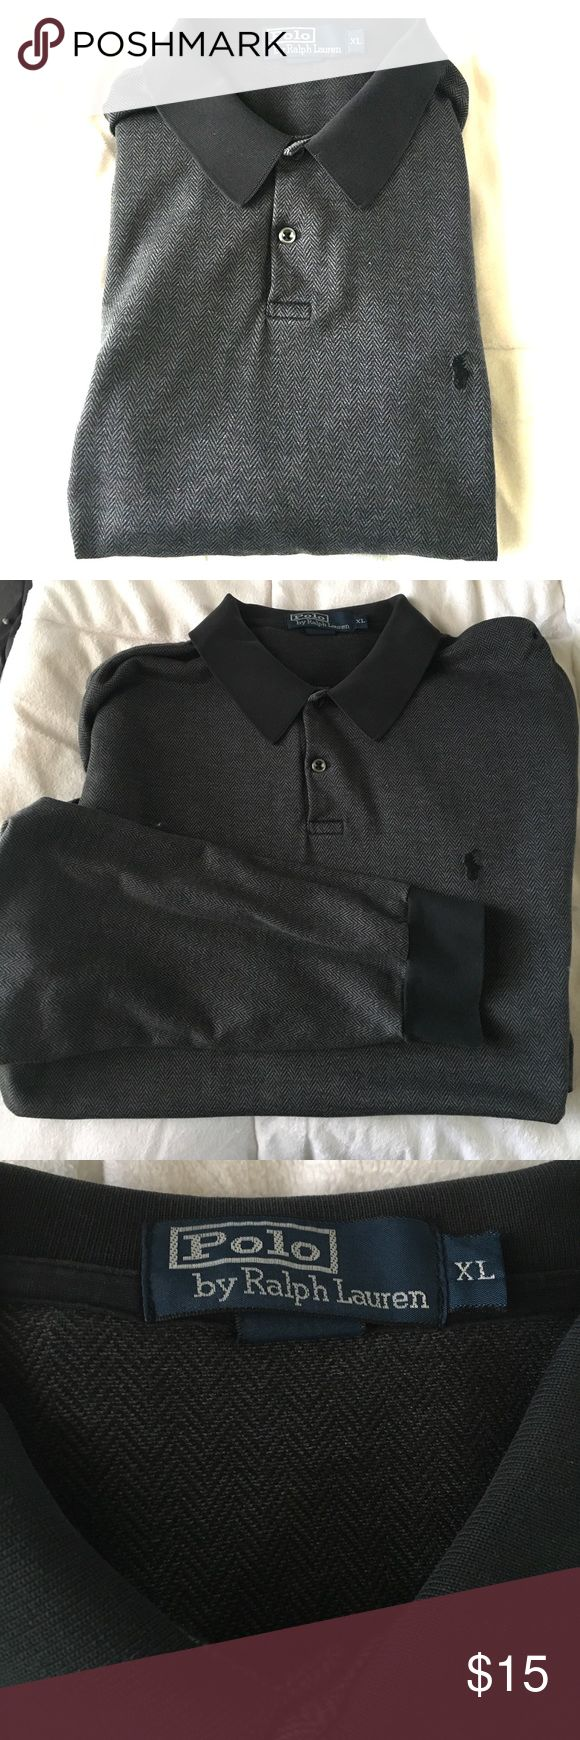 Polo By Ralph Lauren Long Sleeve Ruby Shirt Vintage long sleeve light Ralph Lauren Polo pullover very cool haven't seen another one of these in a while Polo by Ralph Lauren Shirts Tees - Long Sleeve